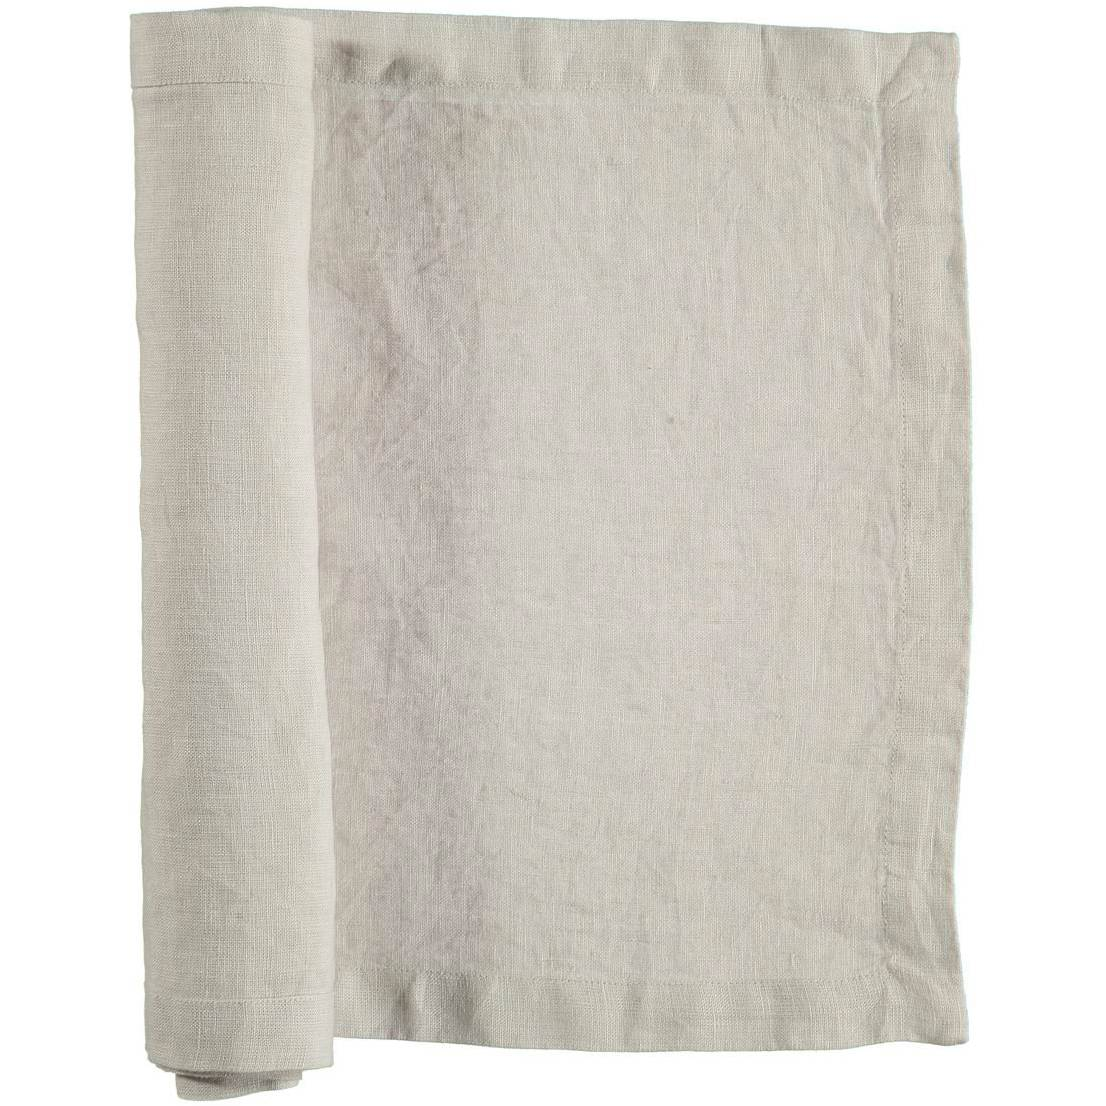 Gripsholm Washed Linen Runner 35x120 cm, Nature